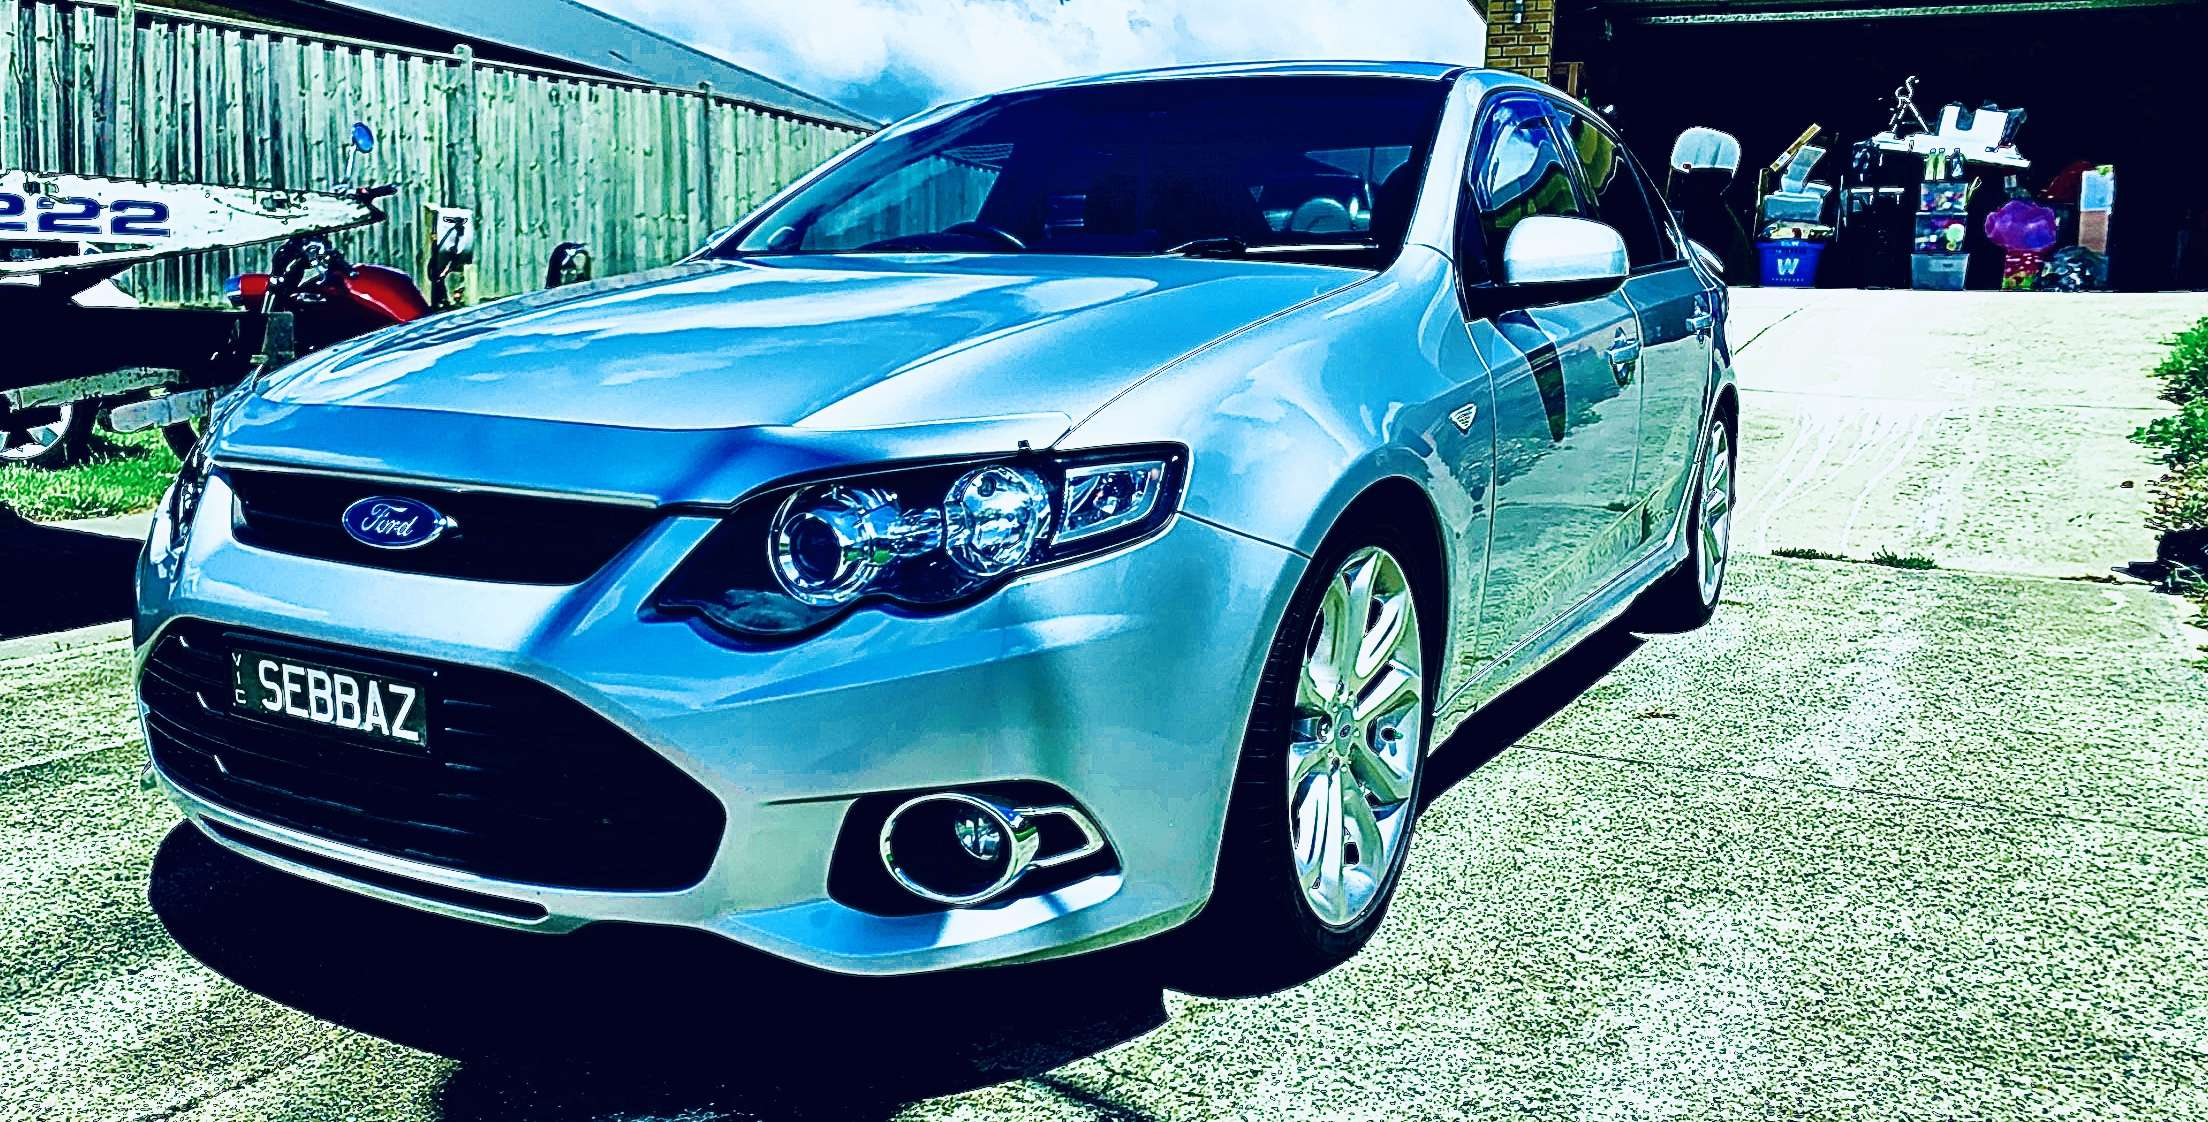 Ford Fg xr6t luxury pack